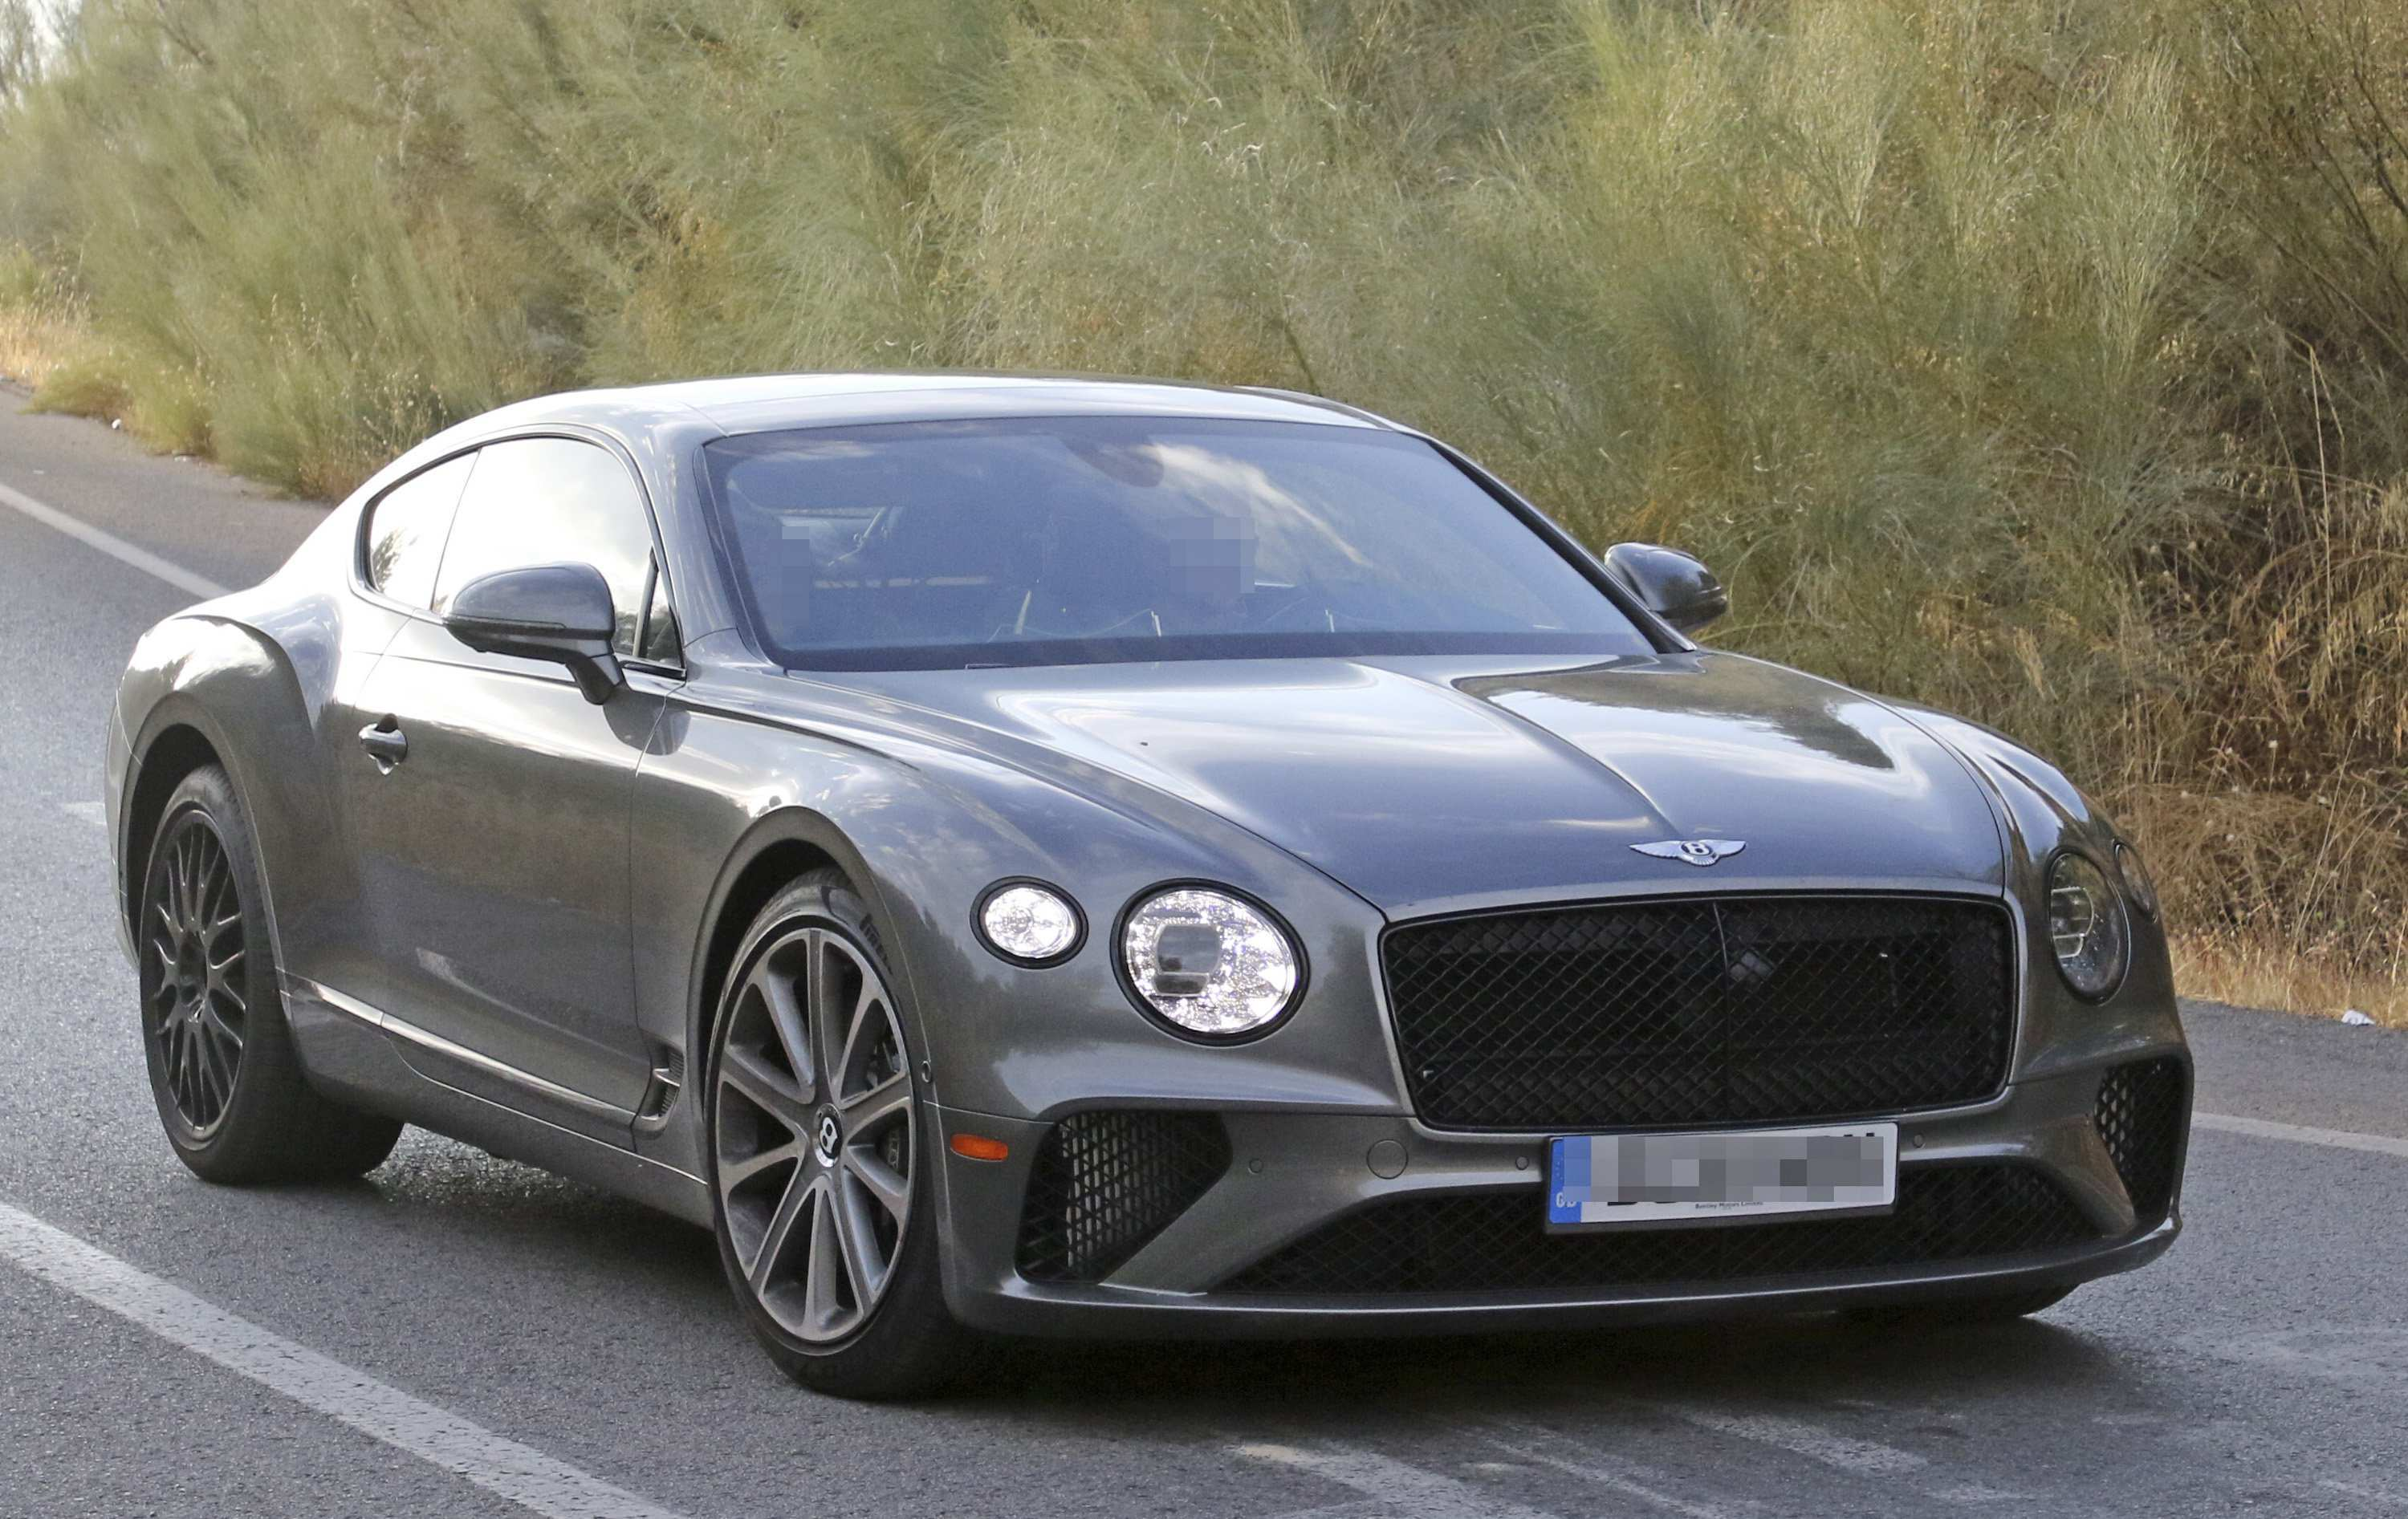 86 Great 2019 Bentley Continental Spesification for 2019 Bentley Continental